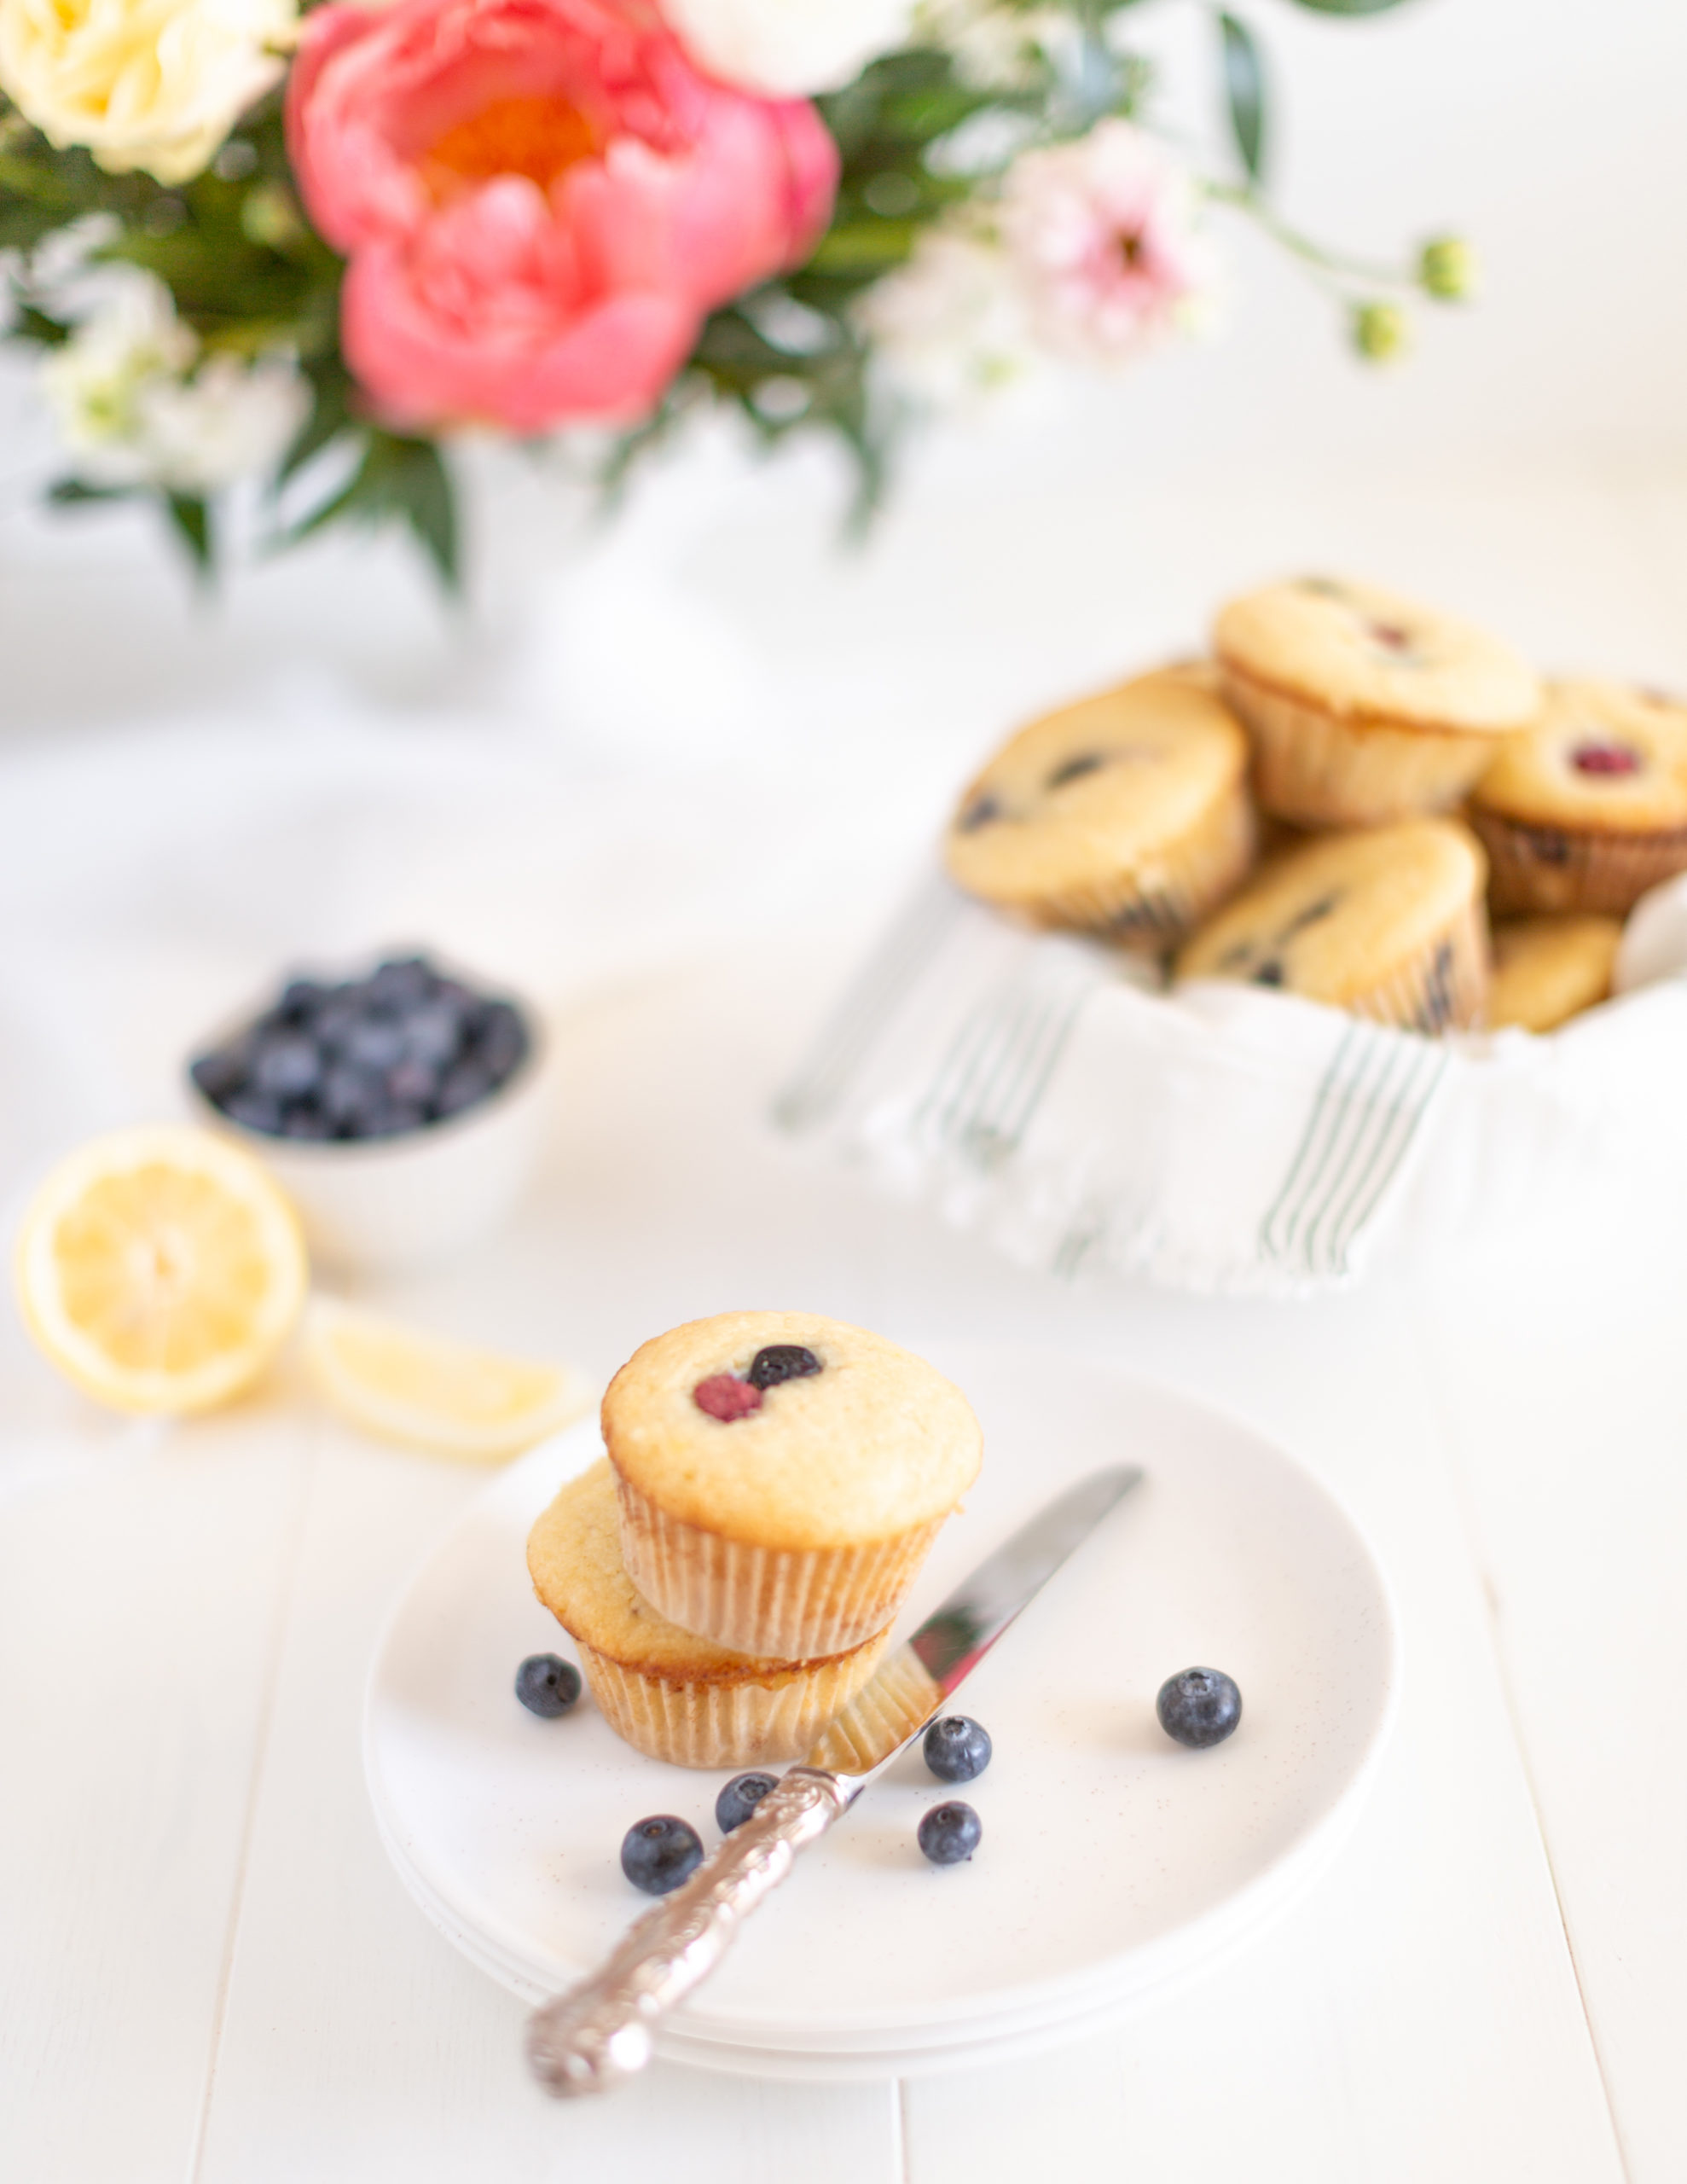 Blueberry Lemon Ricotta Muffin recipe perfect for fresh summertime berries!